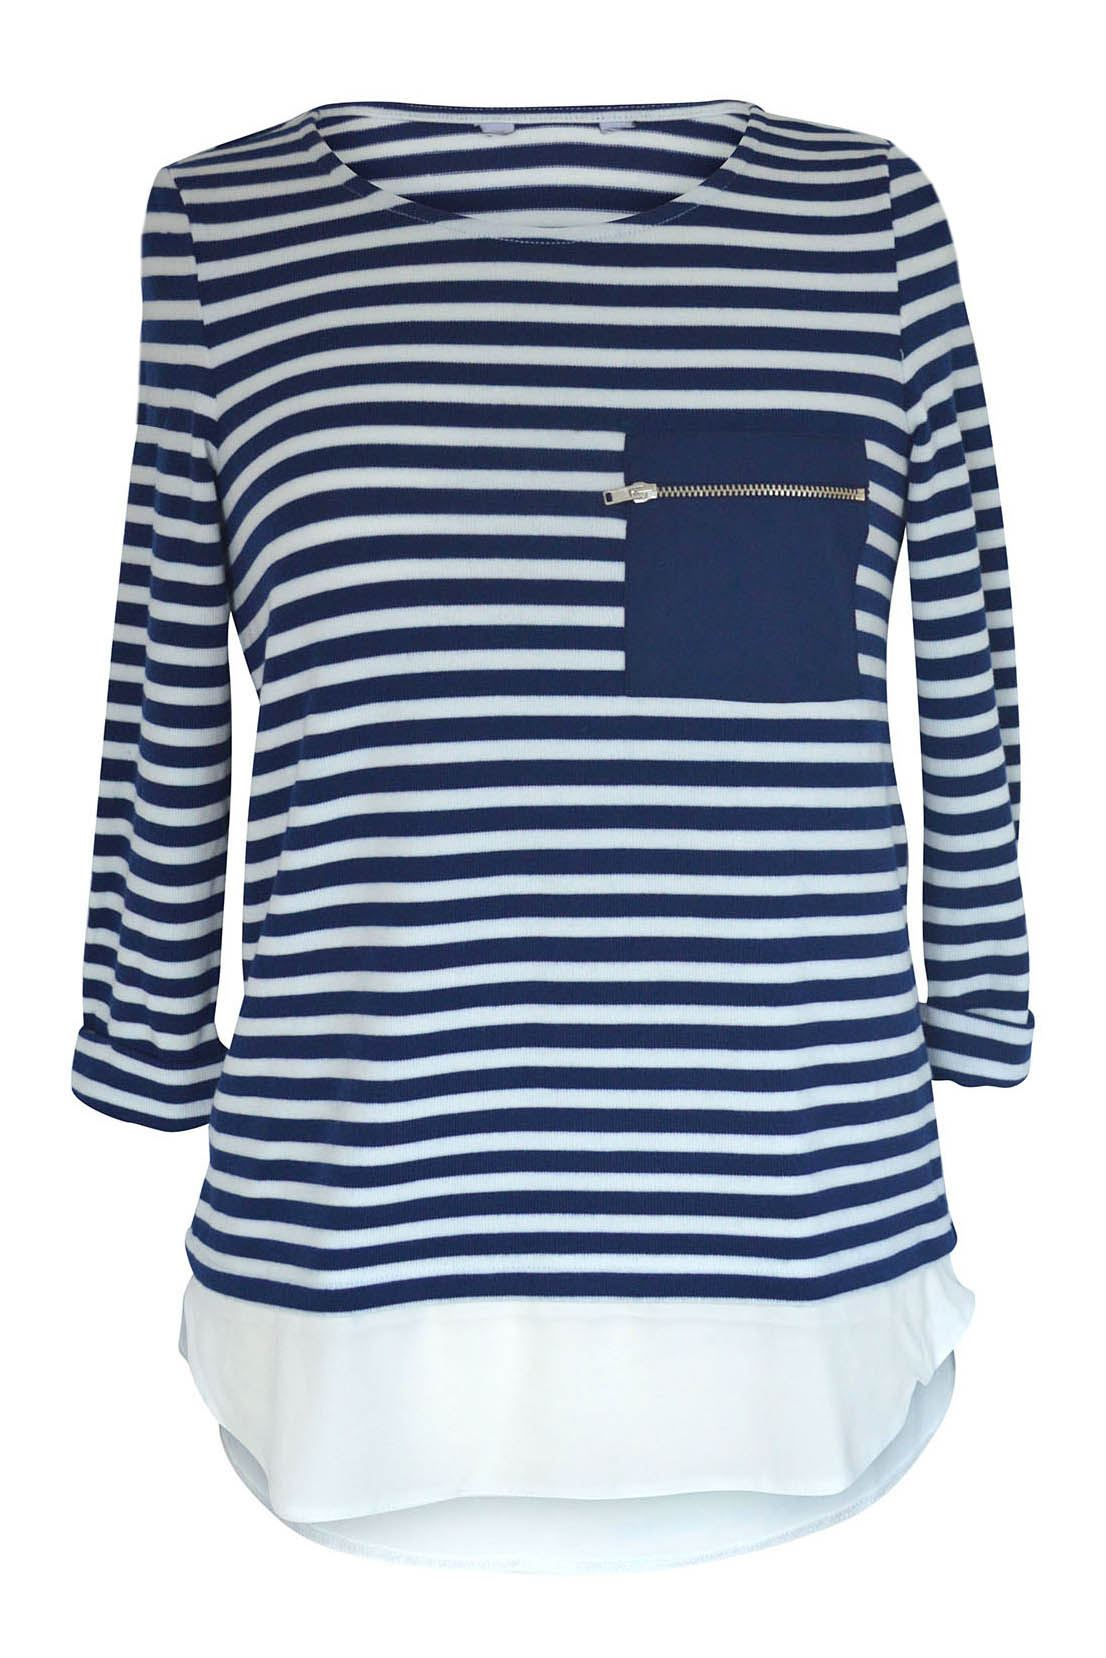 NEW-Ex-Dorothy-Perkins-Stripe-Jersey-Henley-Top-Mock-Layered-Tunic-Size-8-18 thumbnail 7